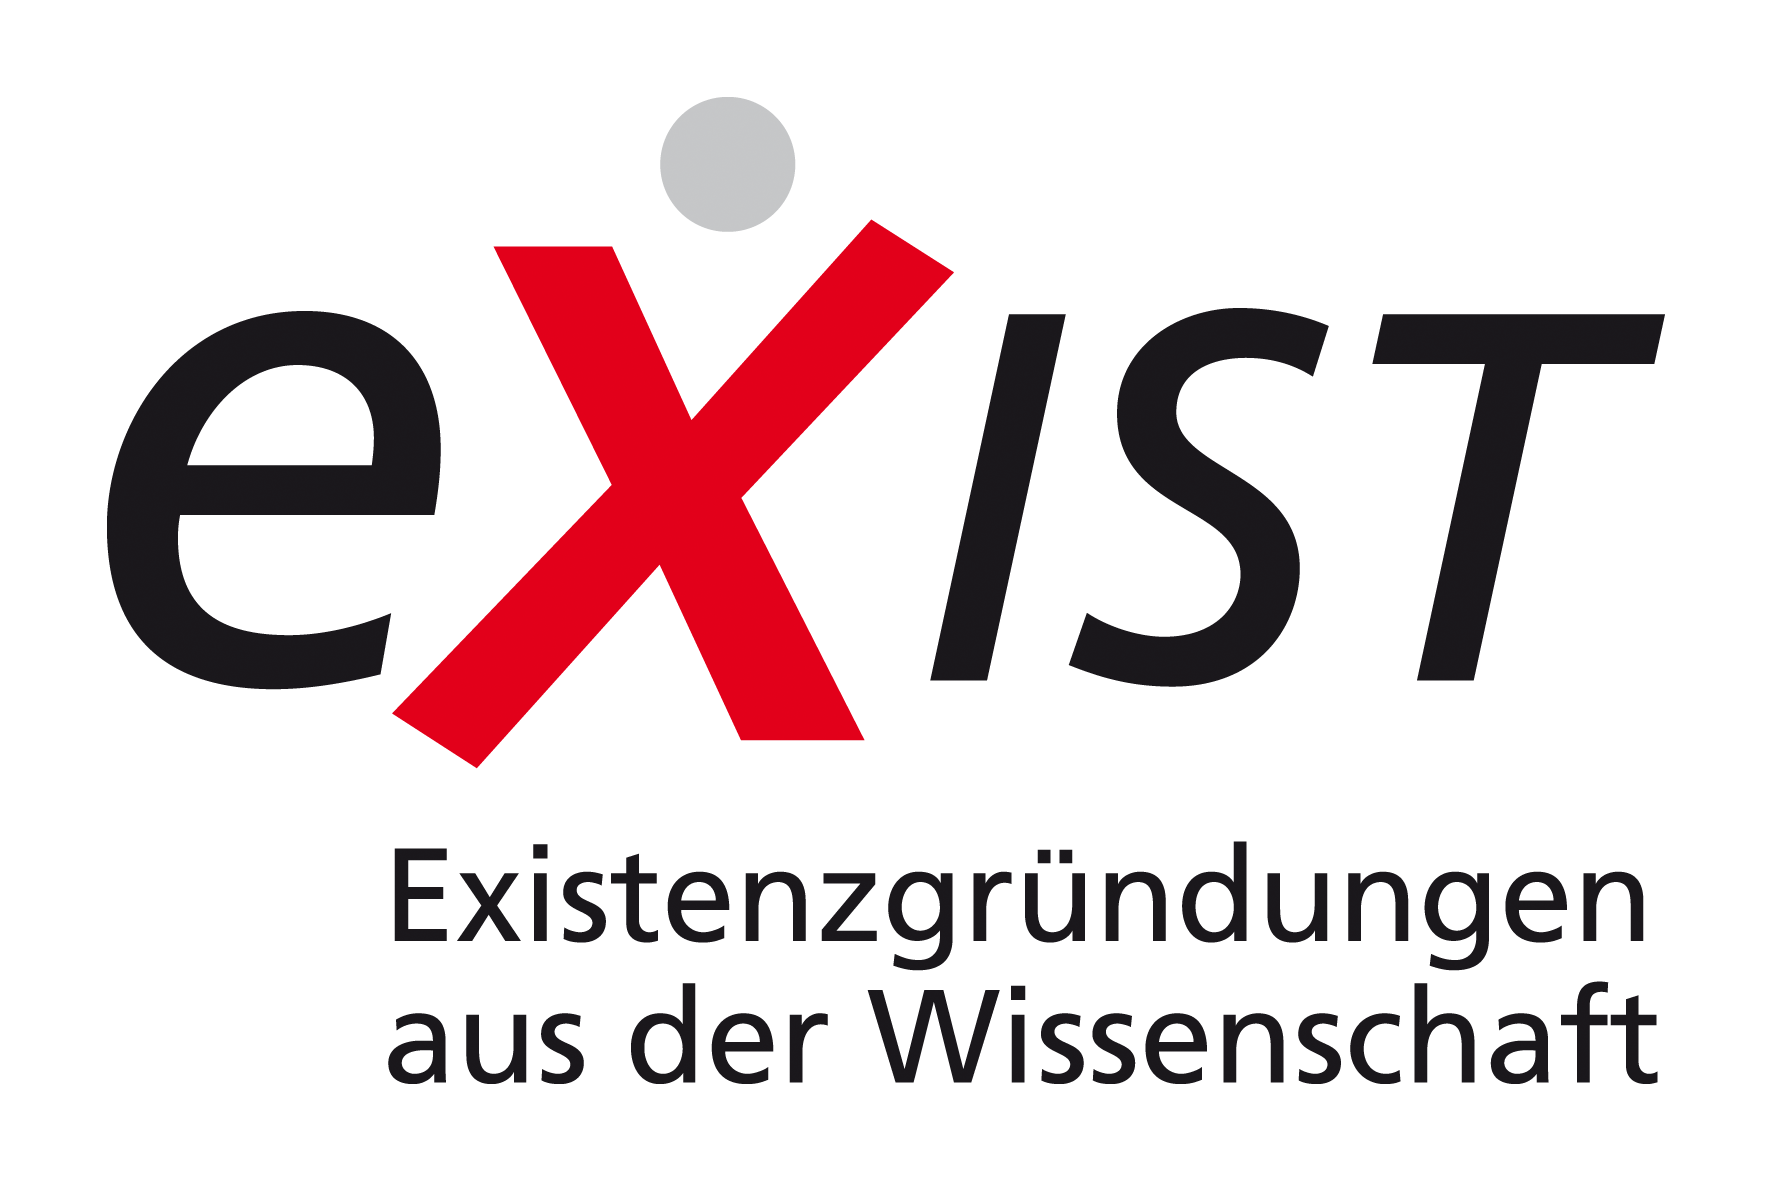 Logo EXIST png